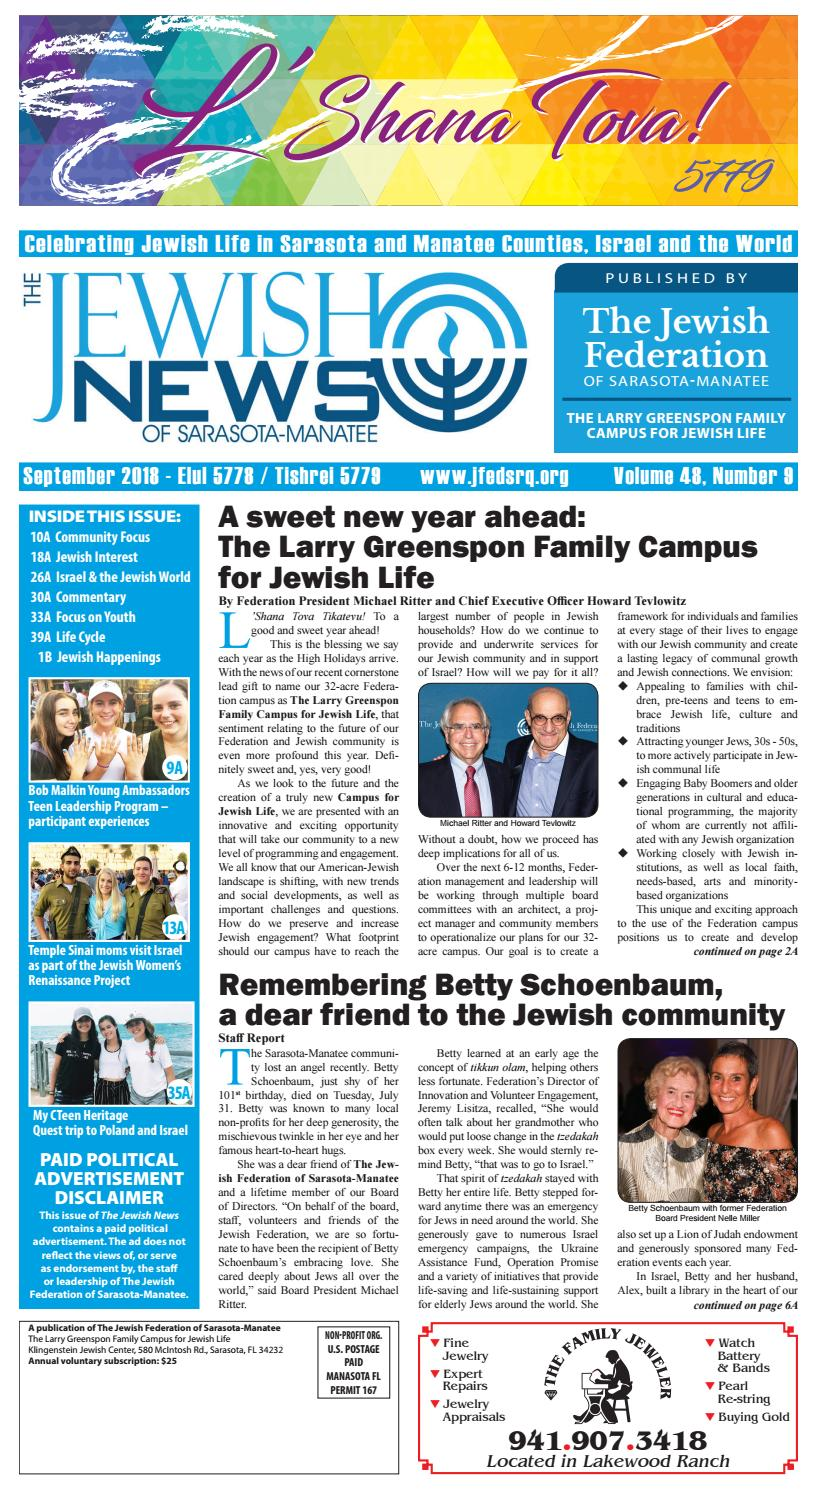 The Jewish News - September 2018 by The Jewish Federation of Sarasota-Manatee - issuu